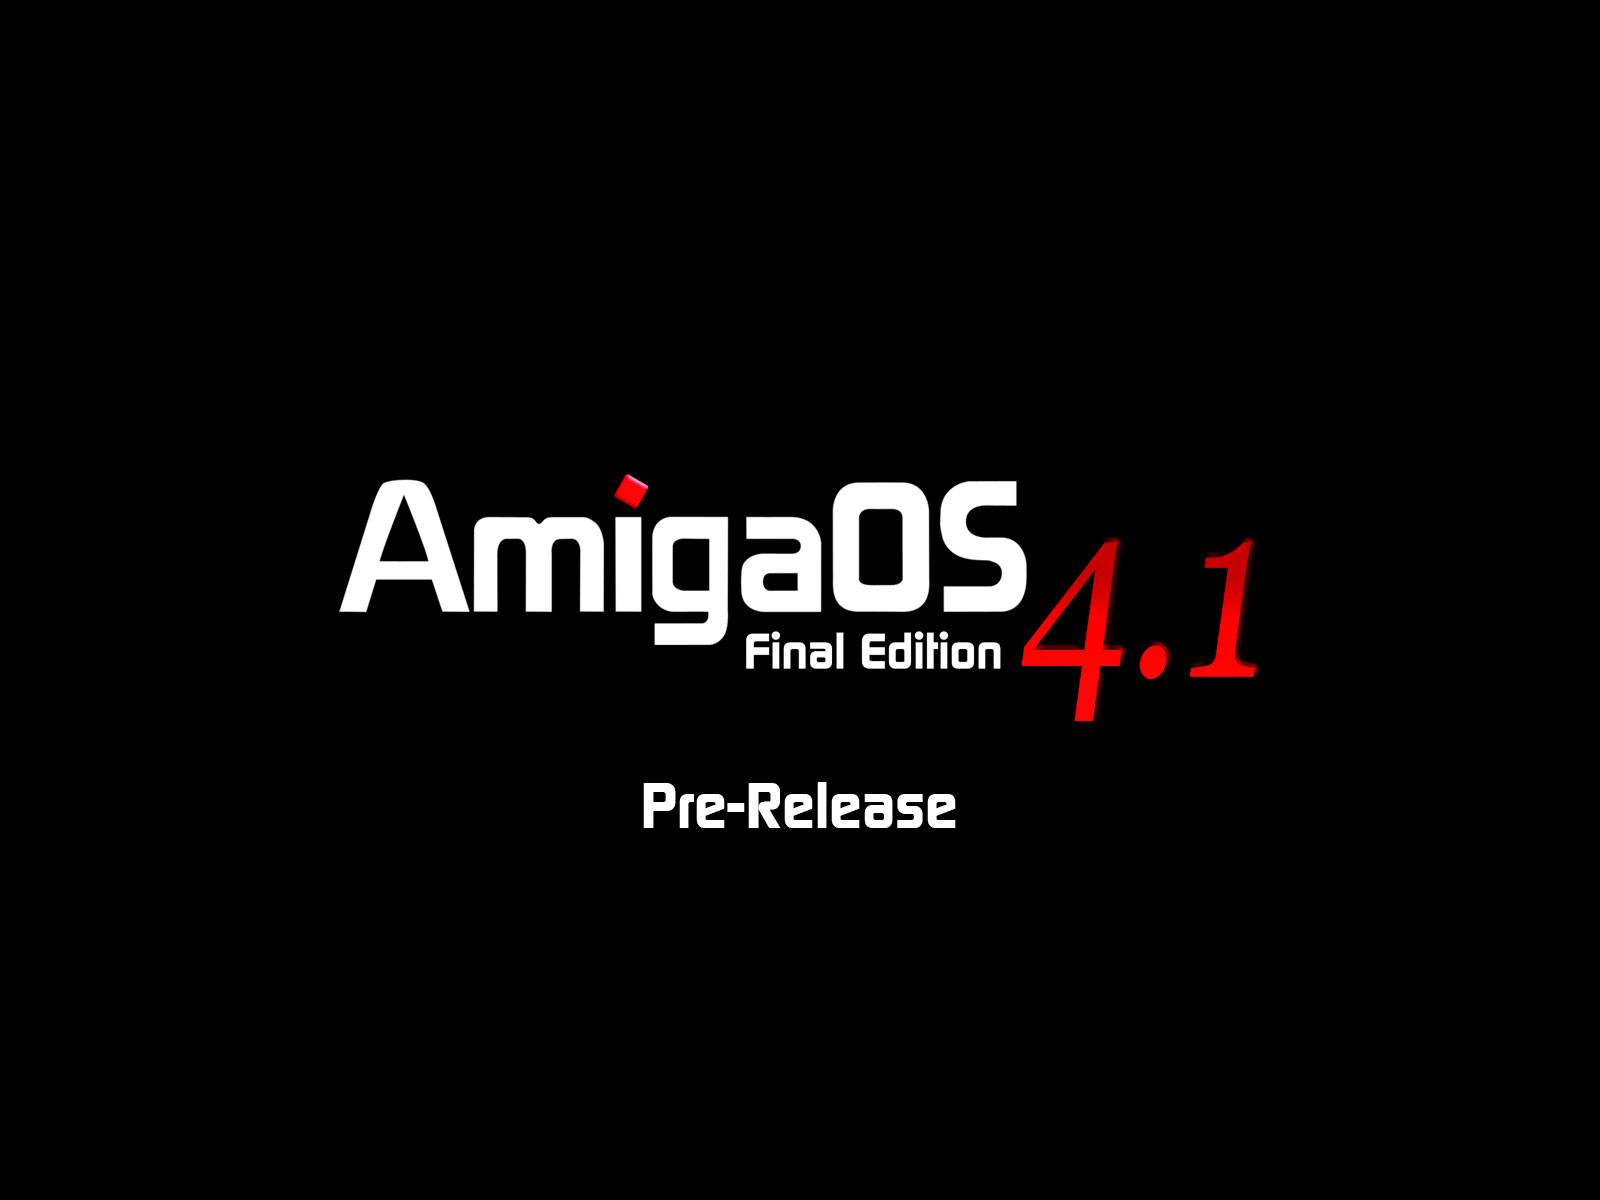 AmigaOS pre-release boot screen